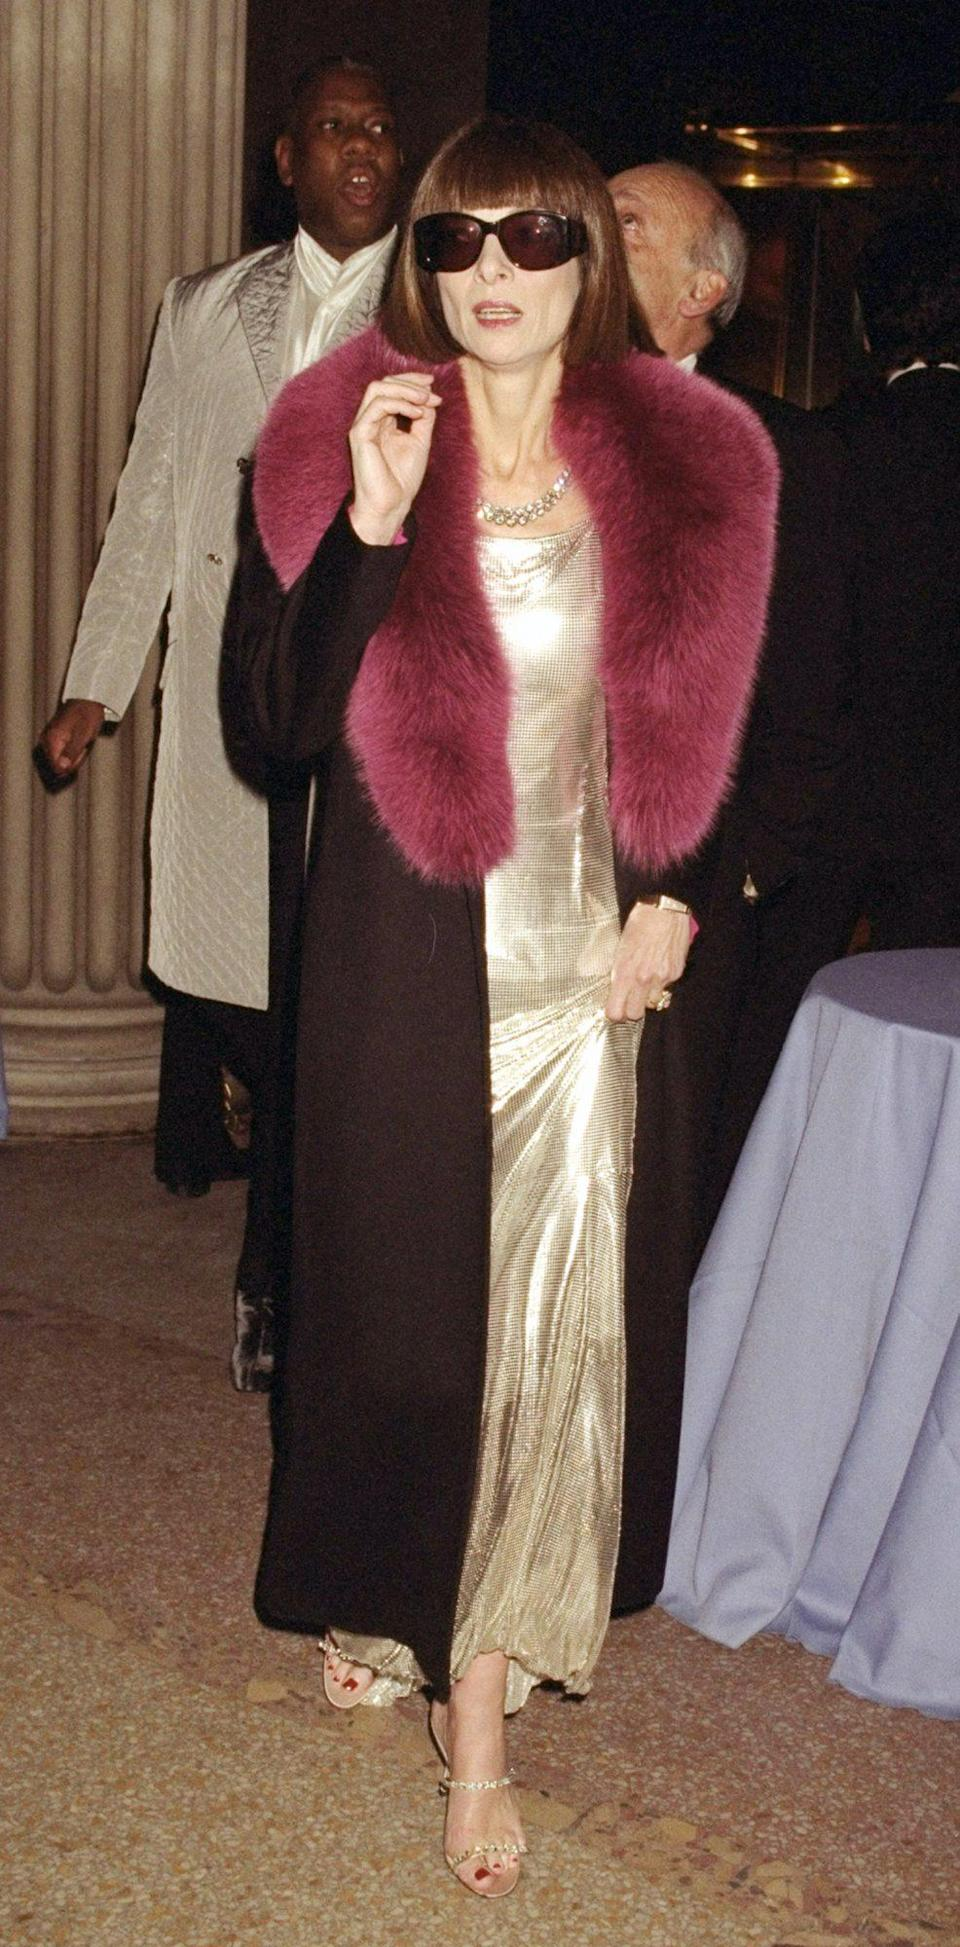 <p><strong>The theme: </strong>Gianni Versace </p> <p><strong>The co-chairs: </strong>Anna Wintour, Julia Koch and Patrick McCarthy </p>